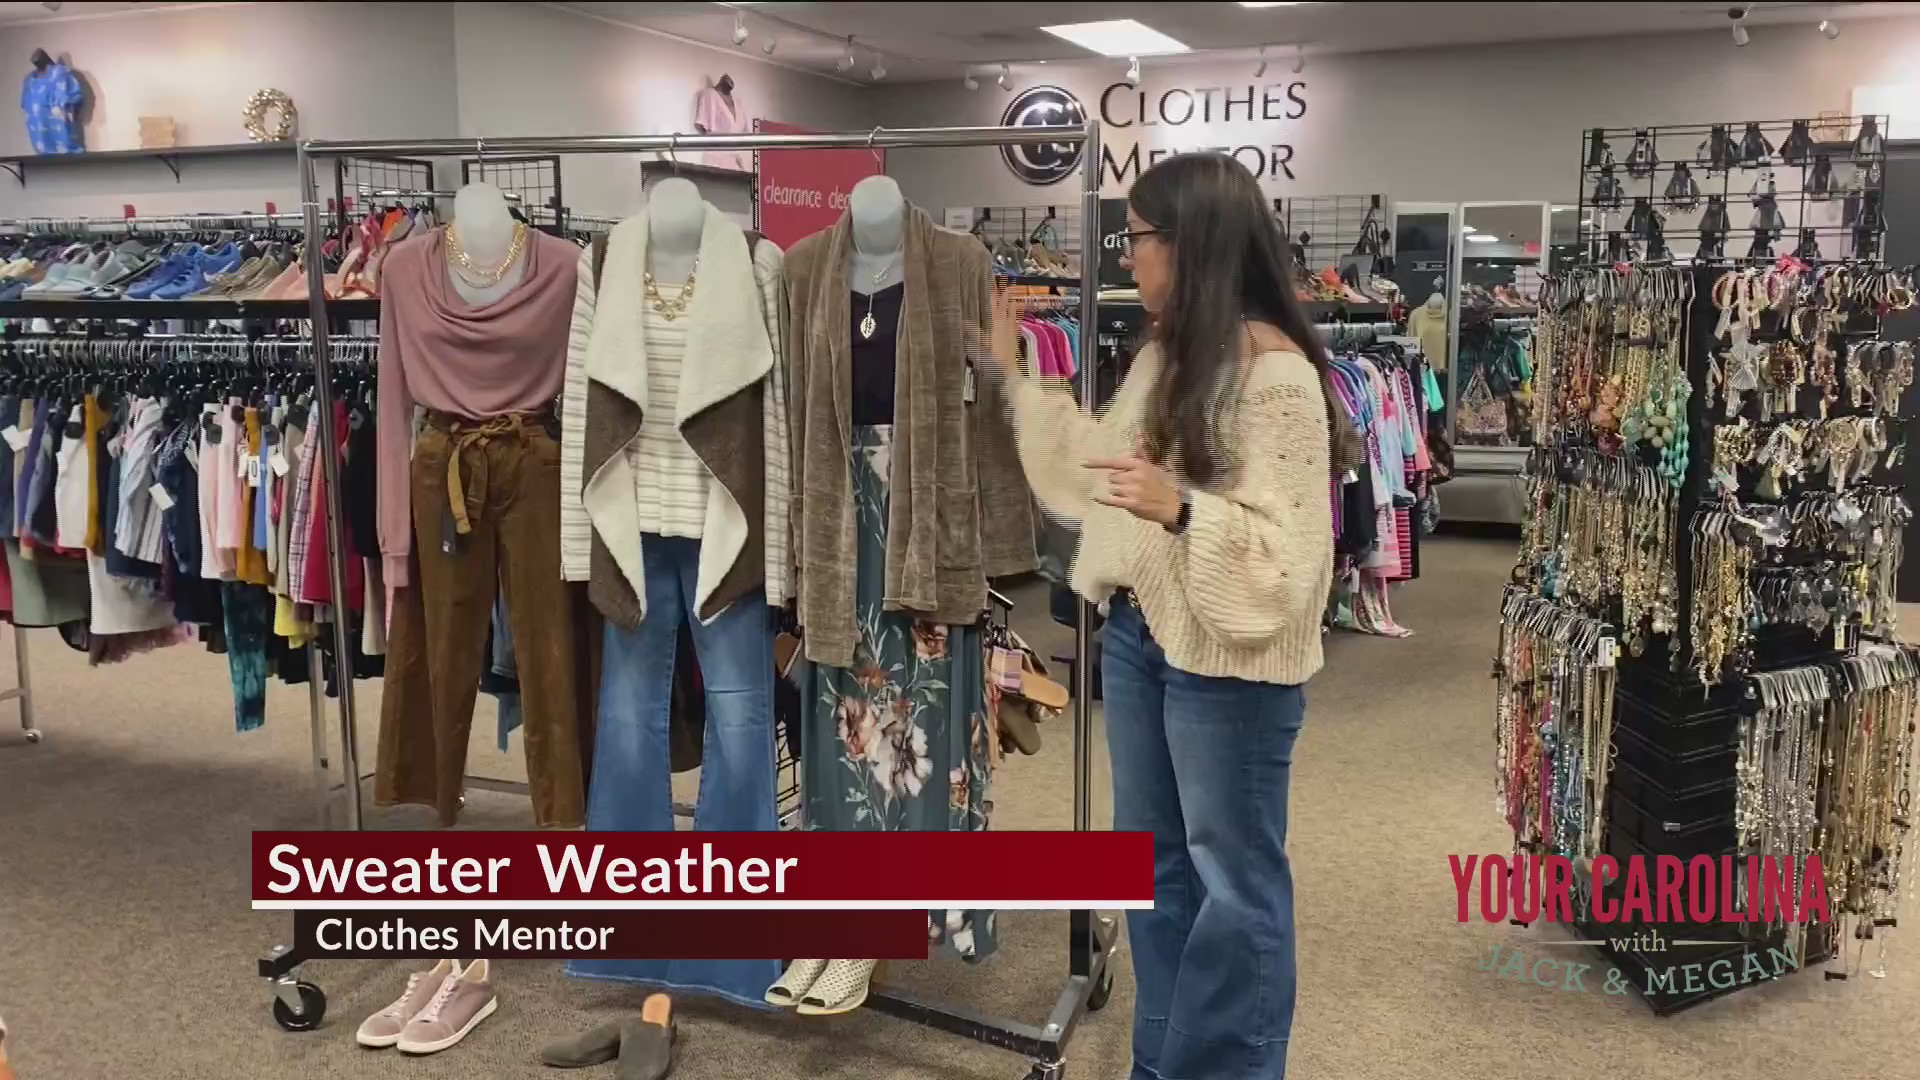 Fashion Trend Tuesday - Sweater Weather